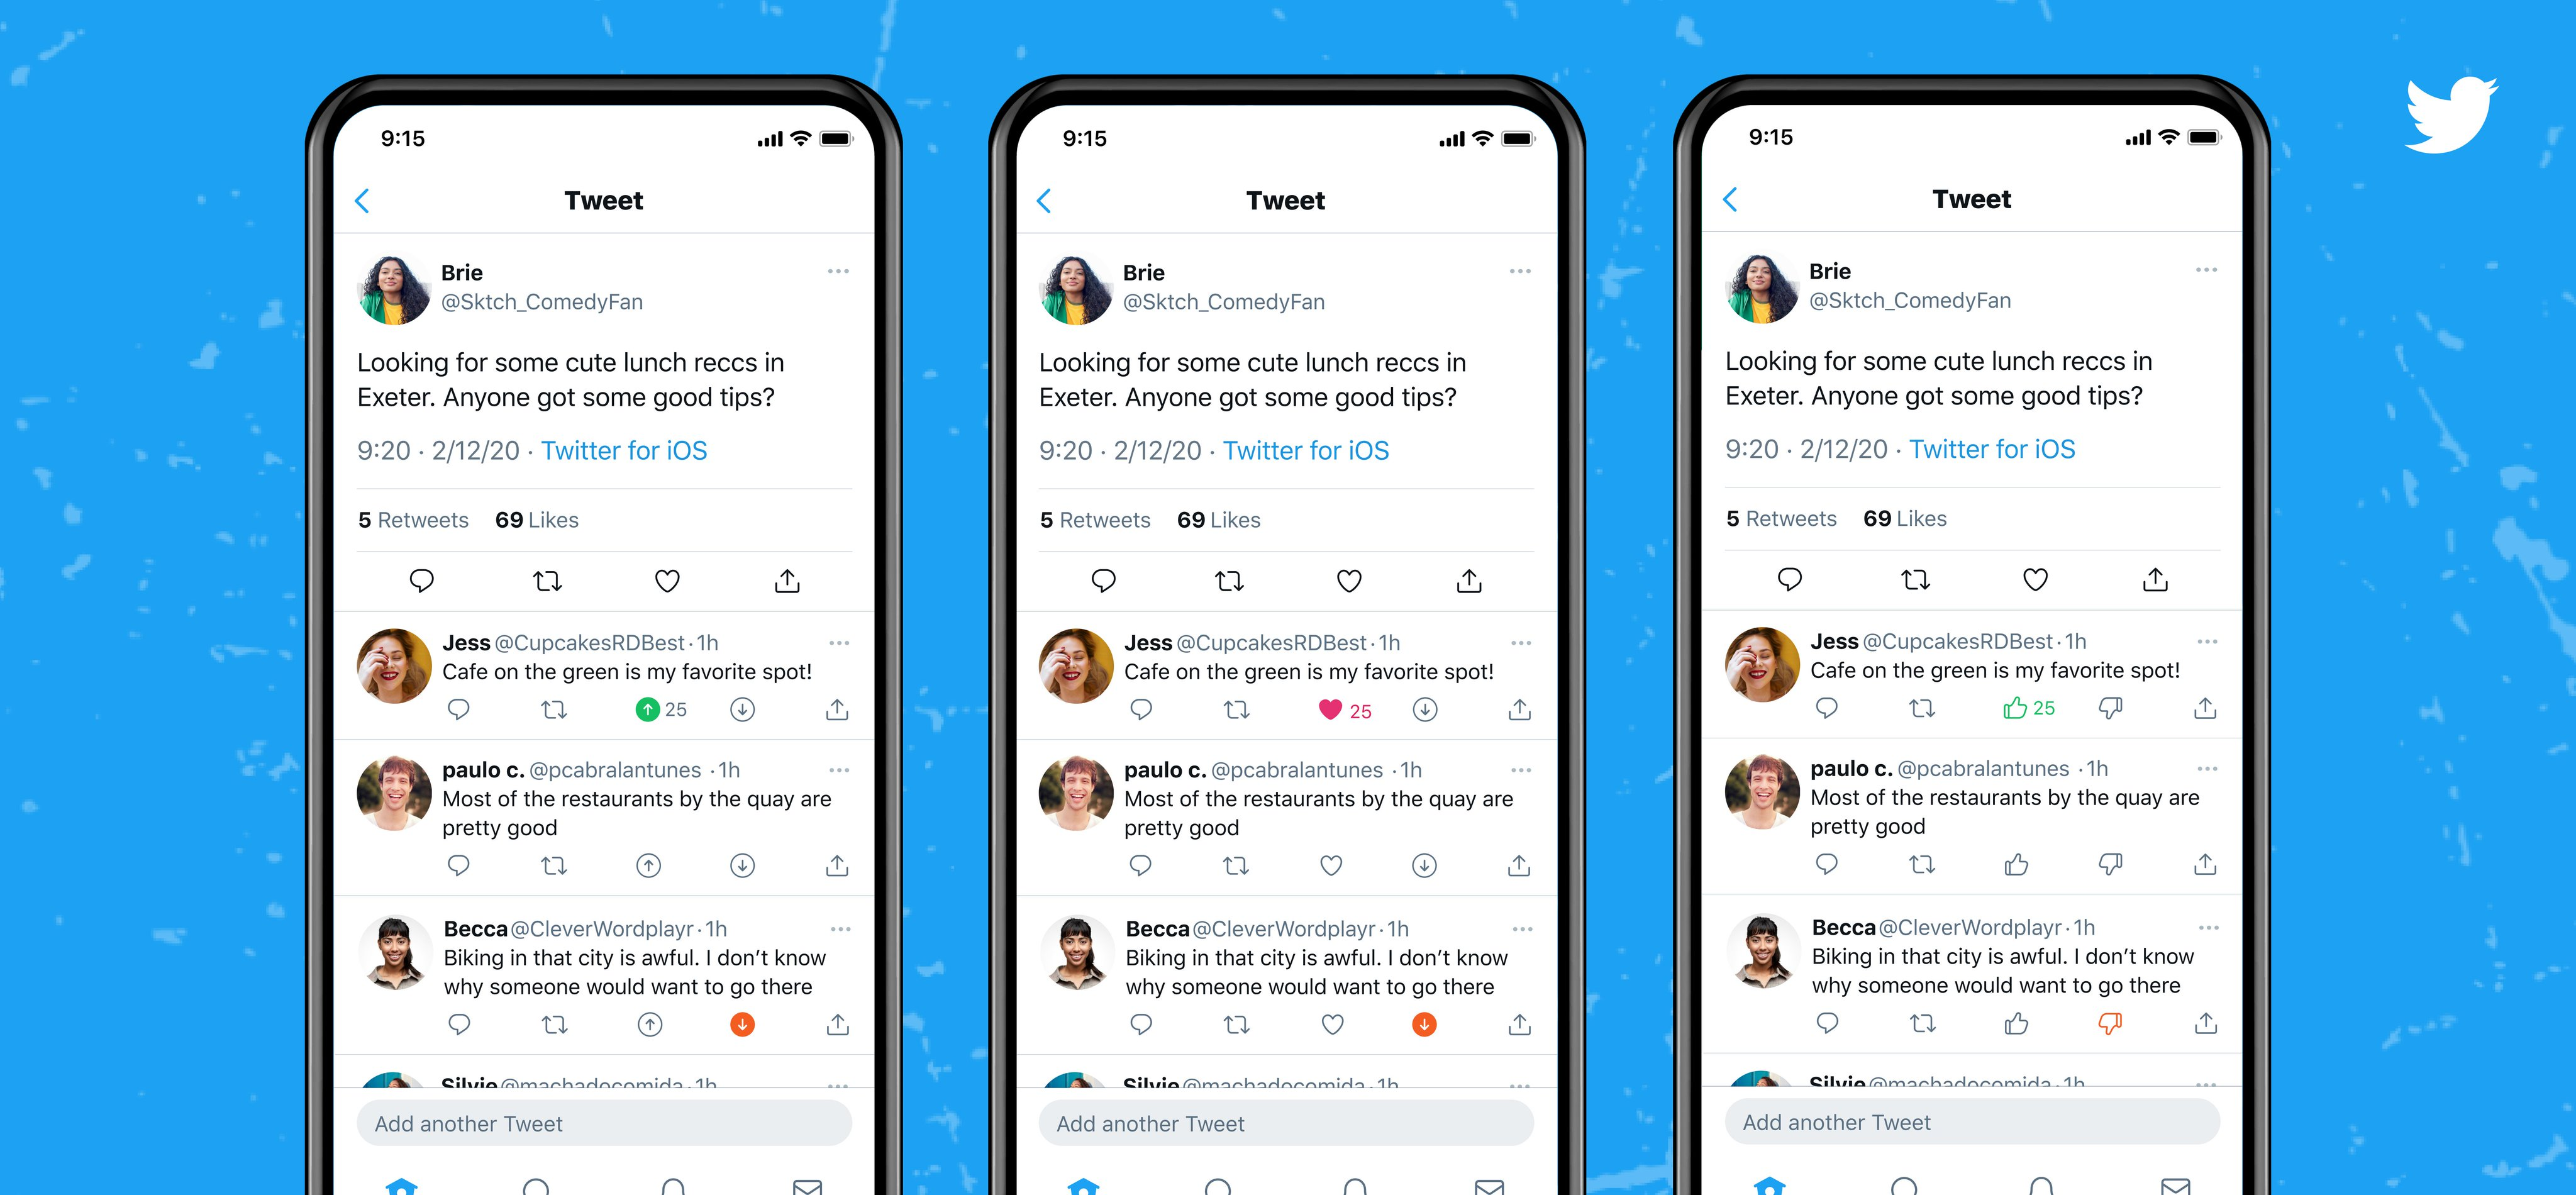 Three phones showing the app version of a Tweet and its replies. The first has replies with the options to vote with an up or down arrow –– the up arrow shows in place of the Like icon. The second has replies with the option to vote with a down arrow only. The third has replies with the option to vote with a thumbs up or thumbs down icon –– the thumbs up icon shows in place of the Like icon.